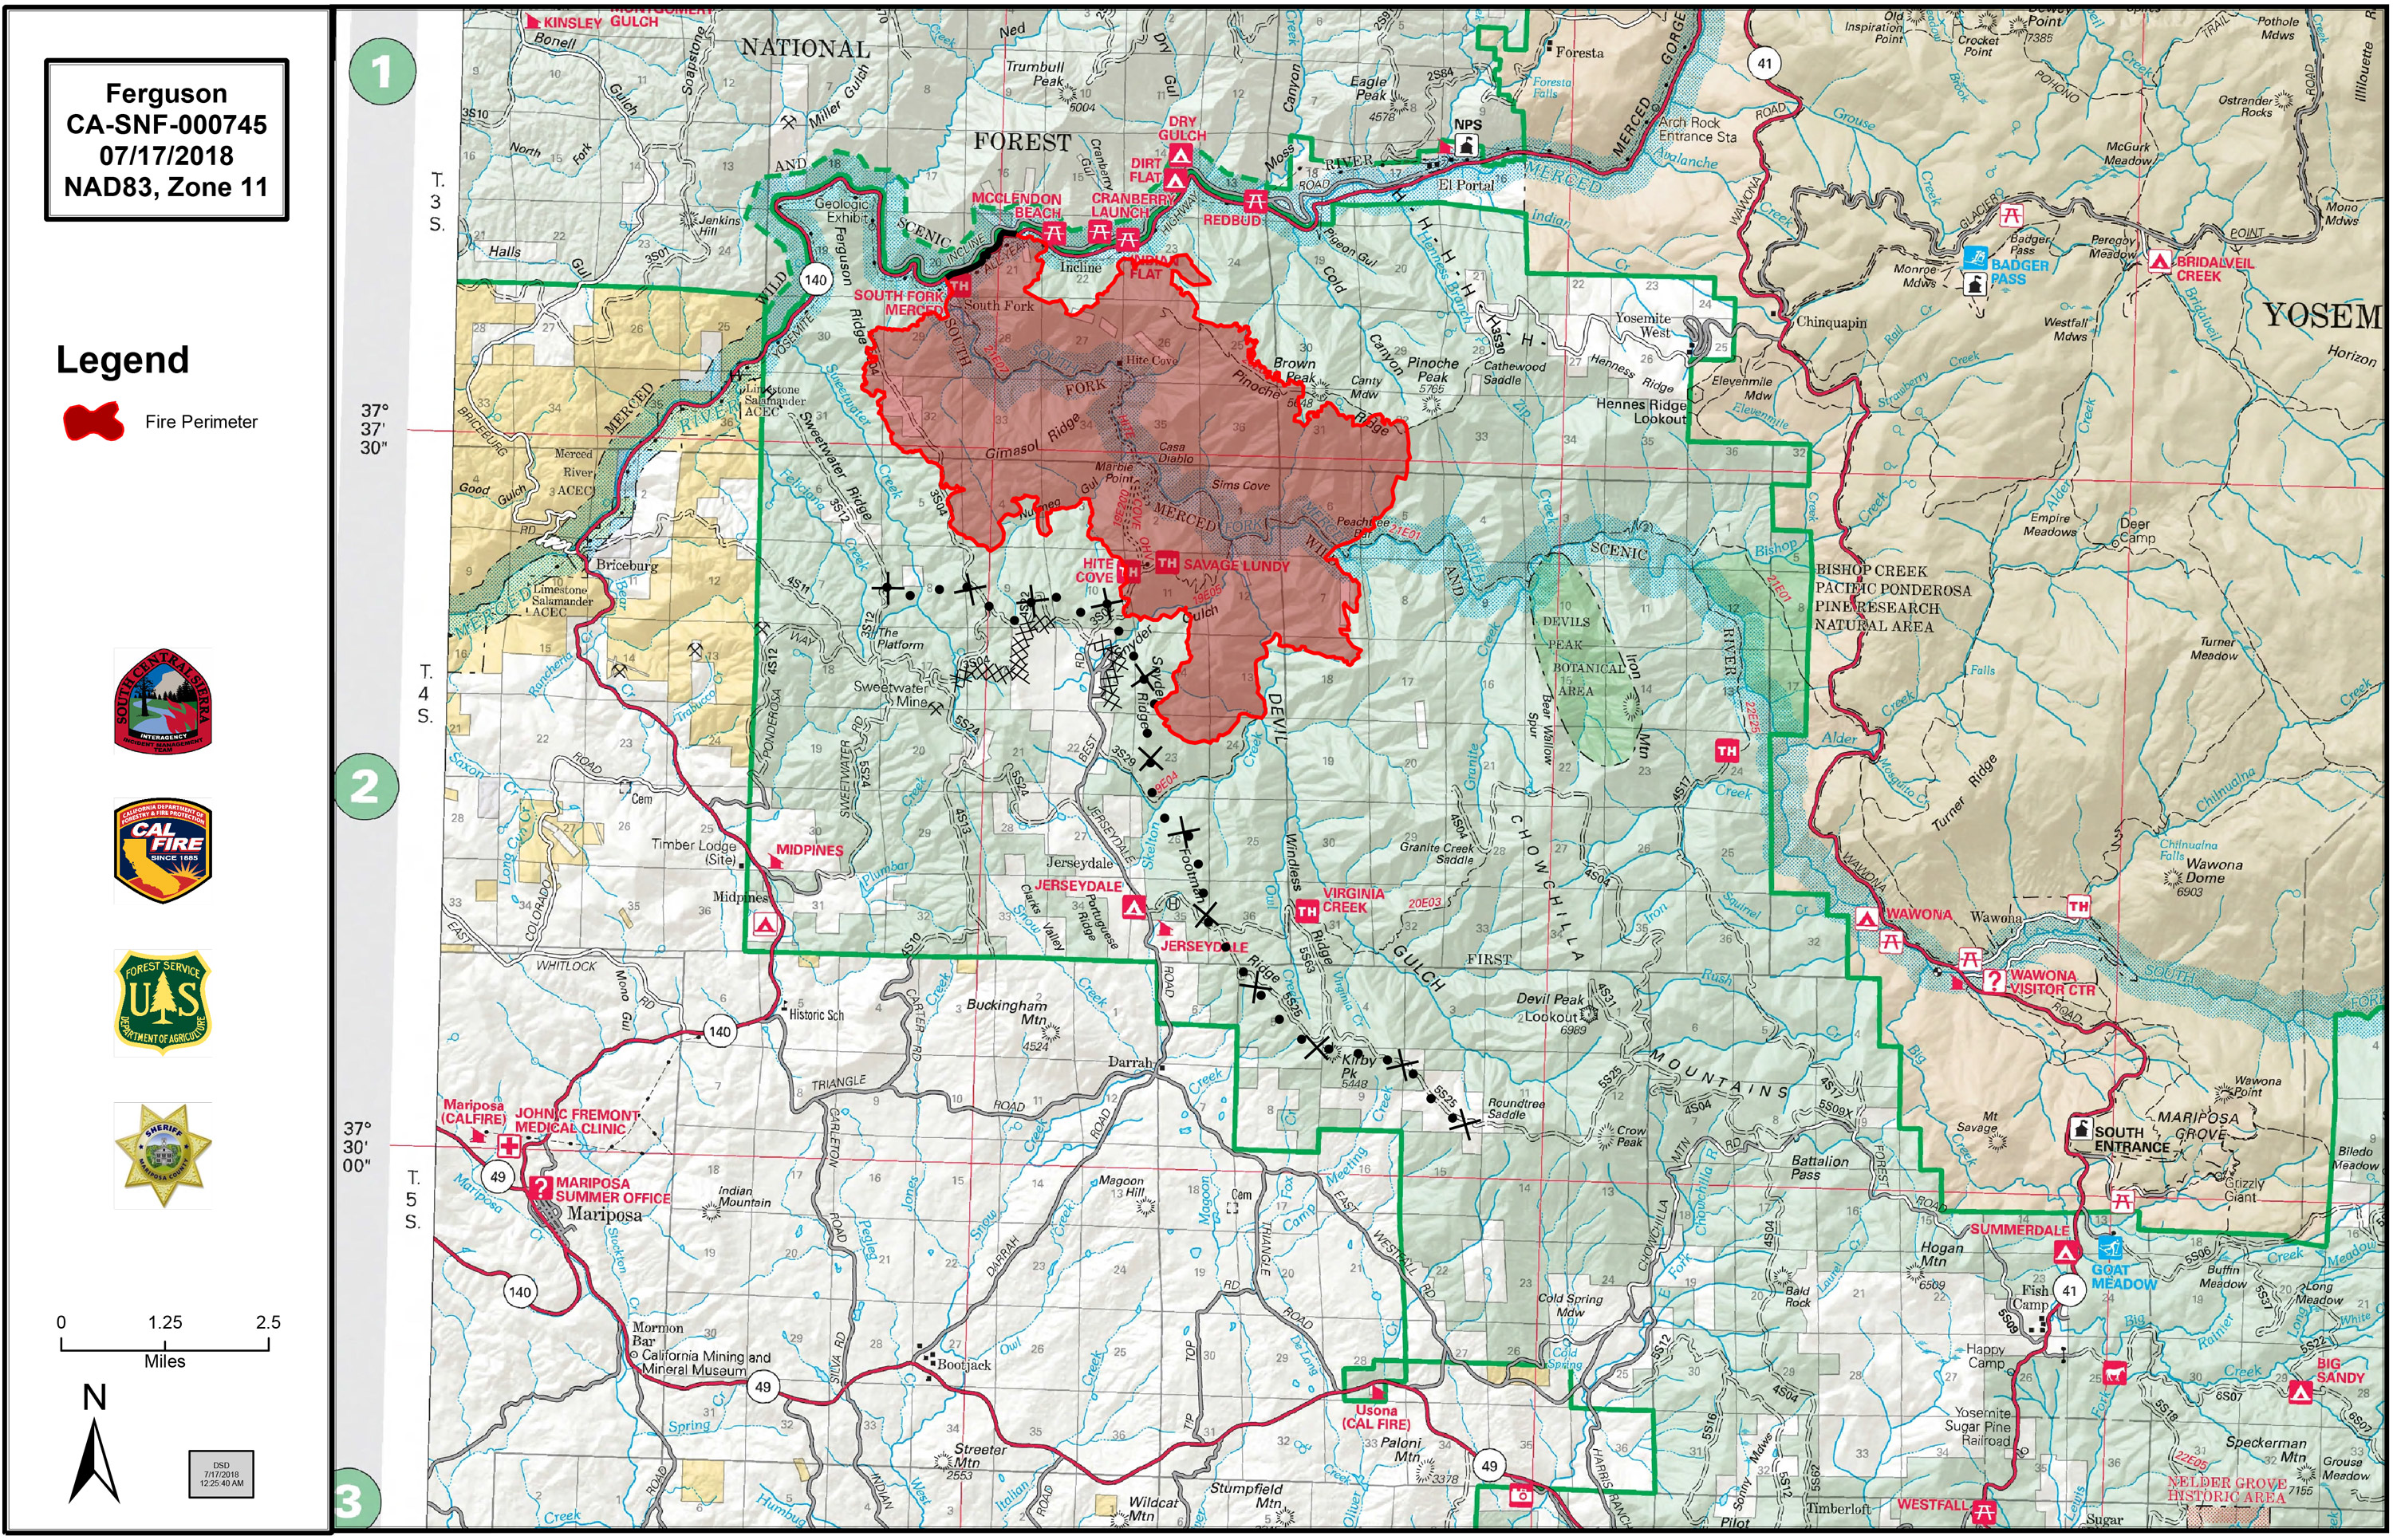 Fire Map Yosemite.Ferguson Fire Near Yosemite National Park In Mariposa County Tuesday